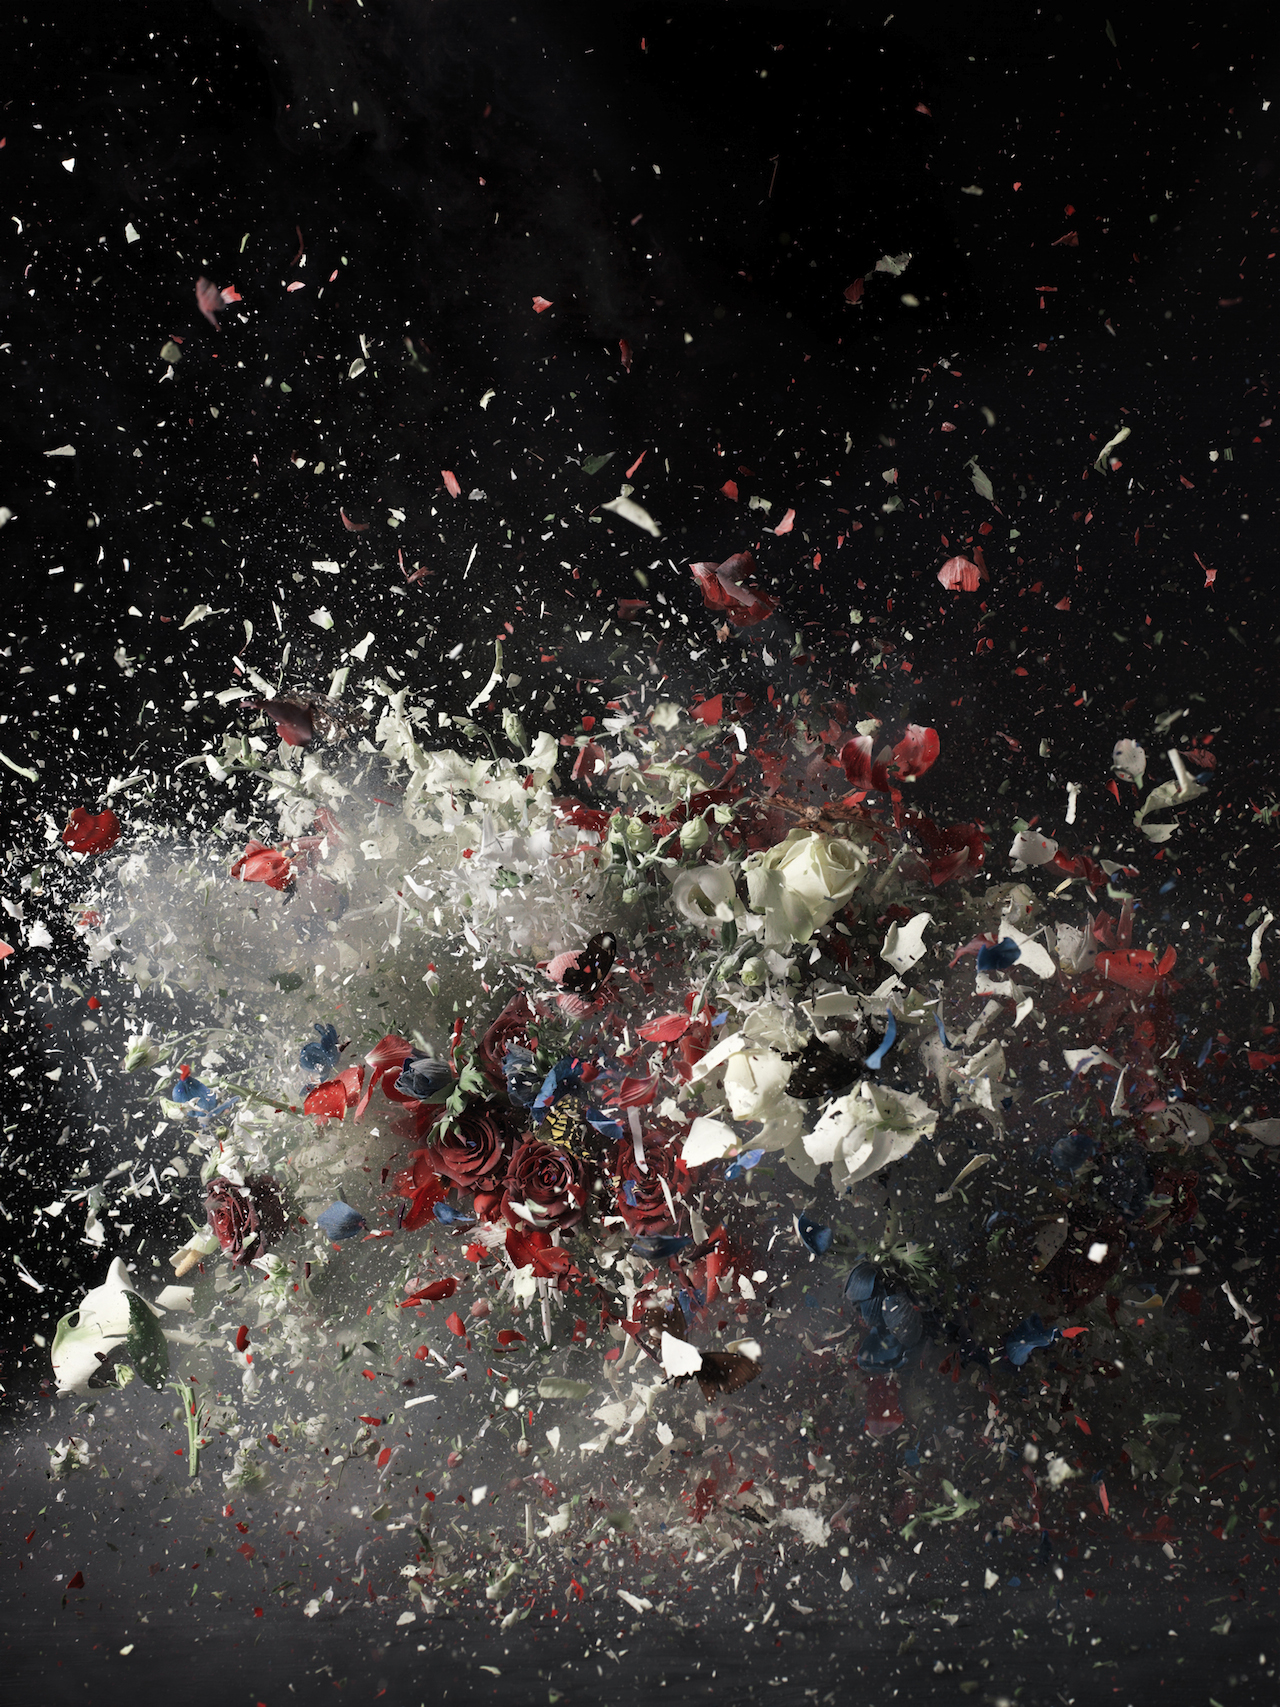 Blow Up, Untitled 1, 2007, Ori Gersht © Ori Gersht, Private Collection, courtesy of Mummery+Schnelle